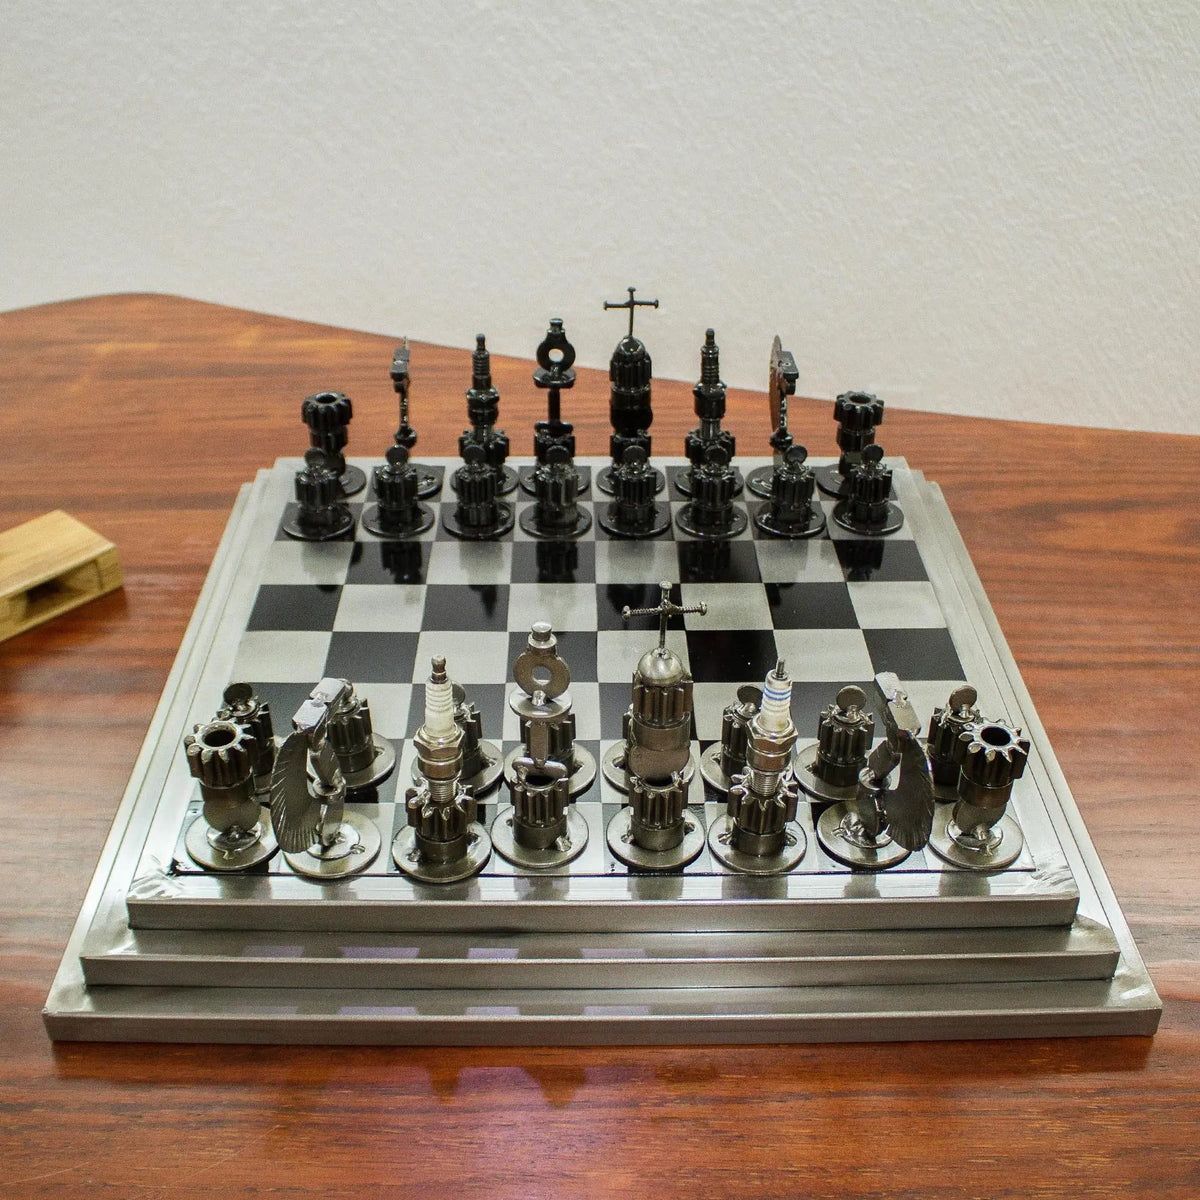 Upcycled Car Parts Chess Set - Hand Crafted in Mexico